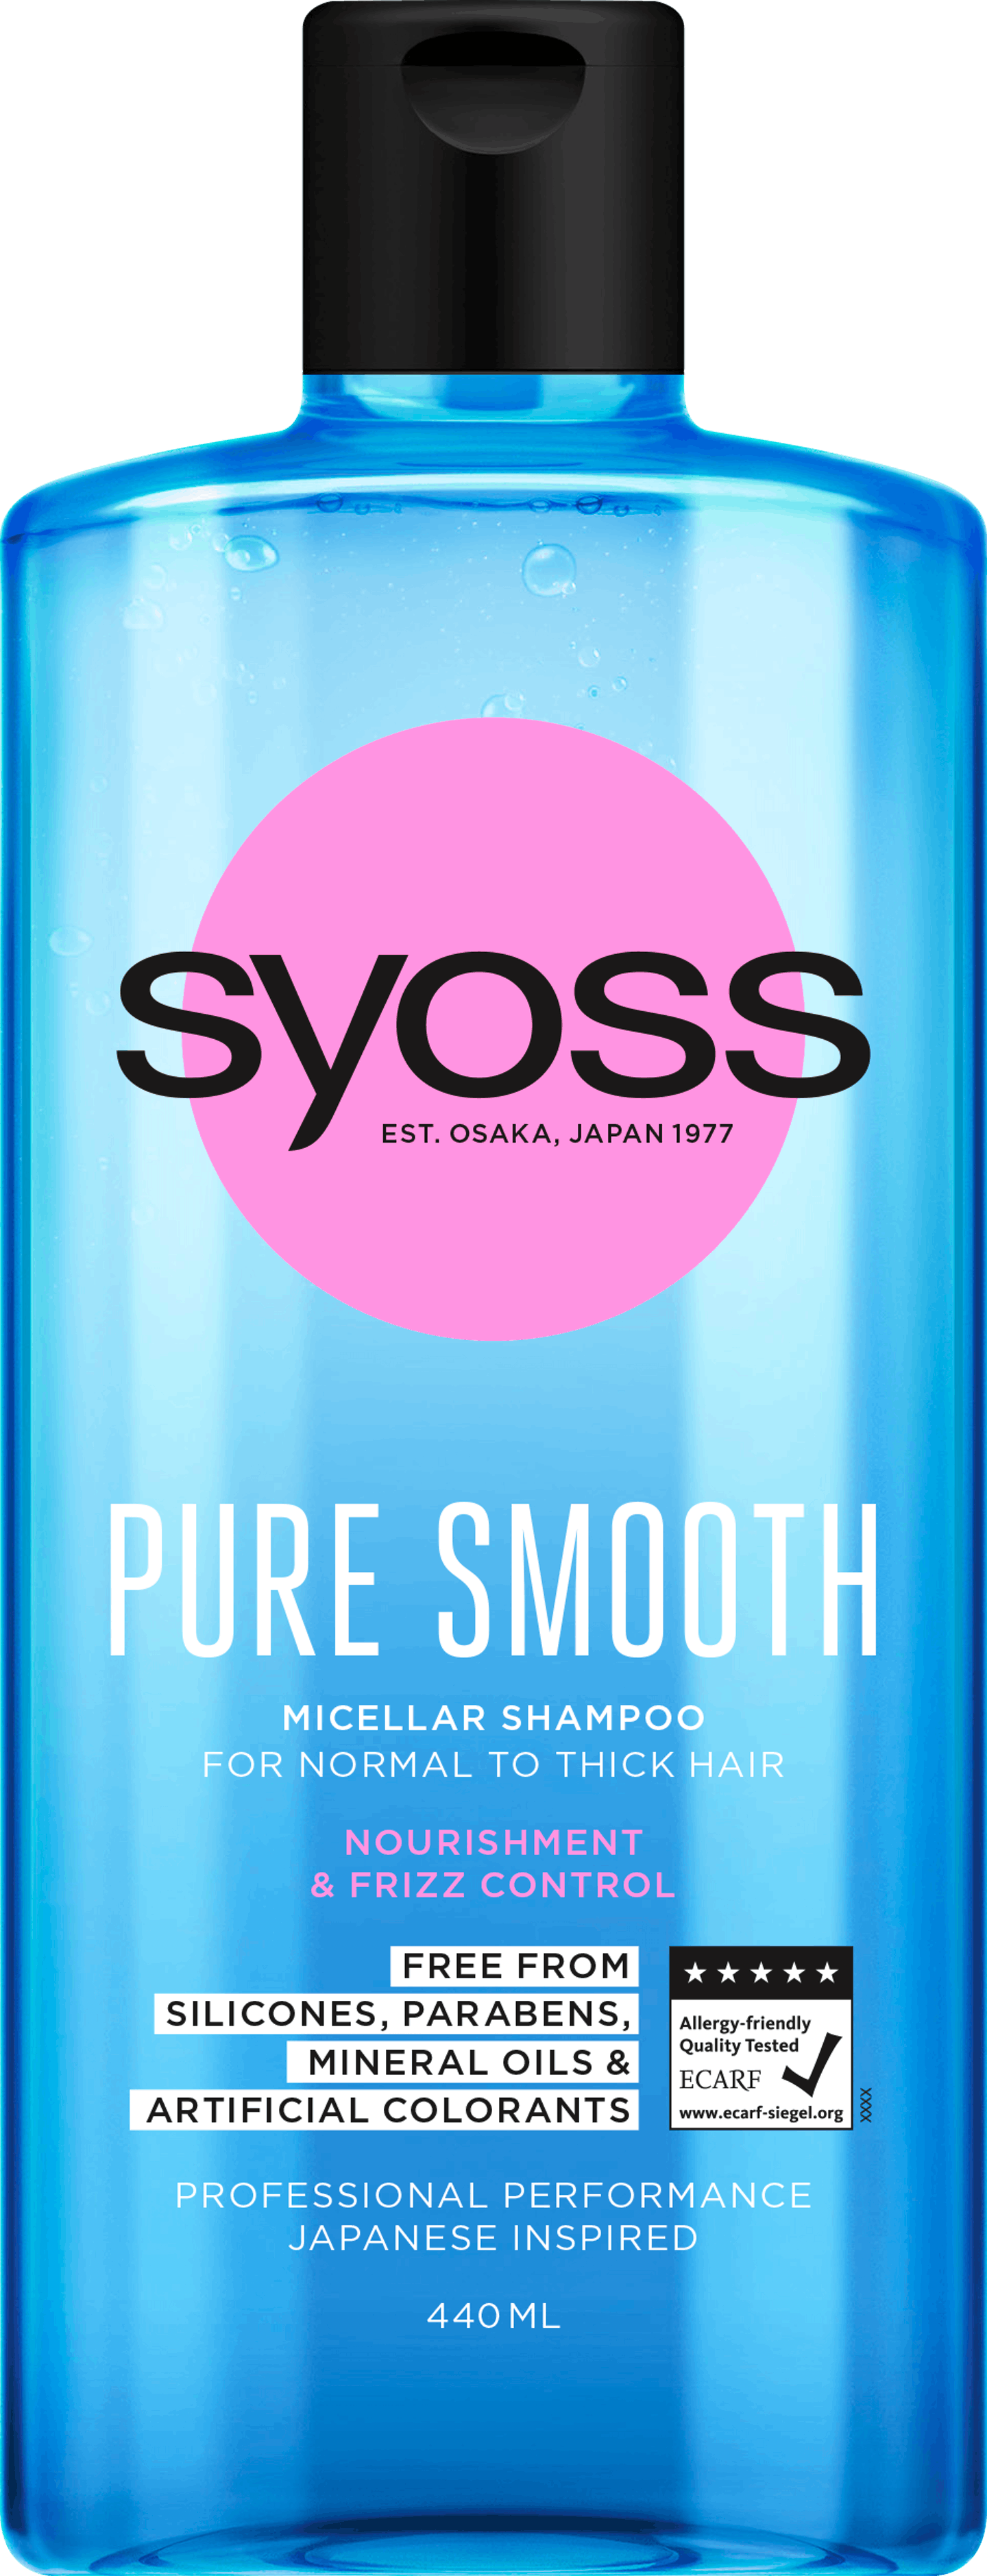 Pure Smooth Shampoo